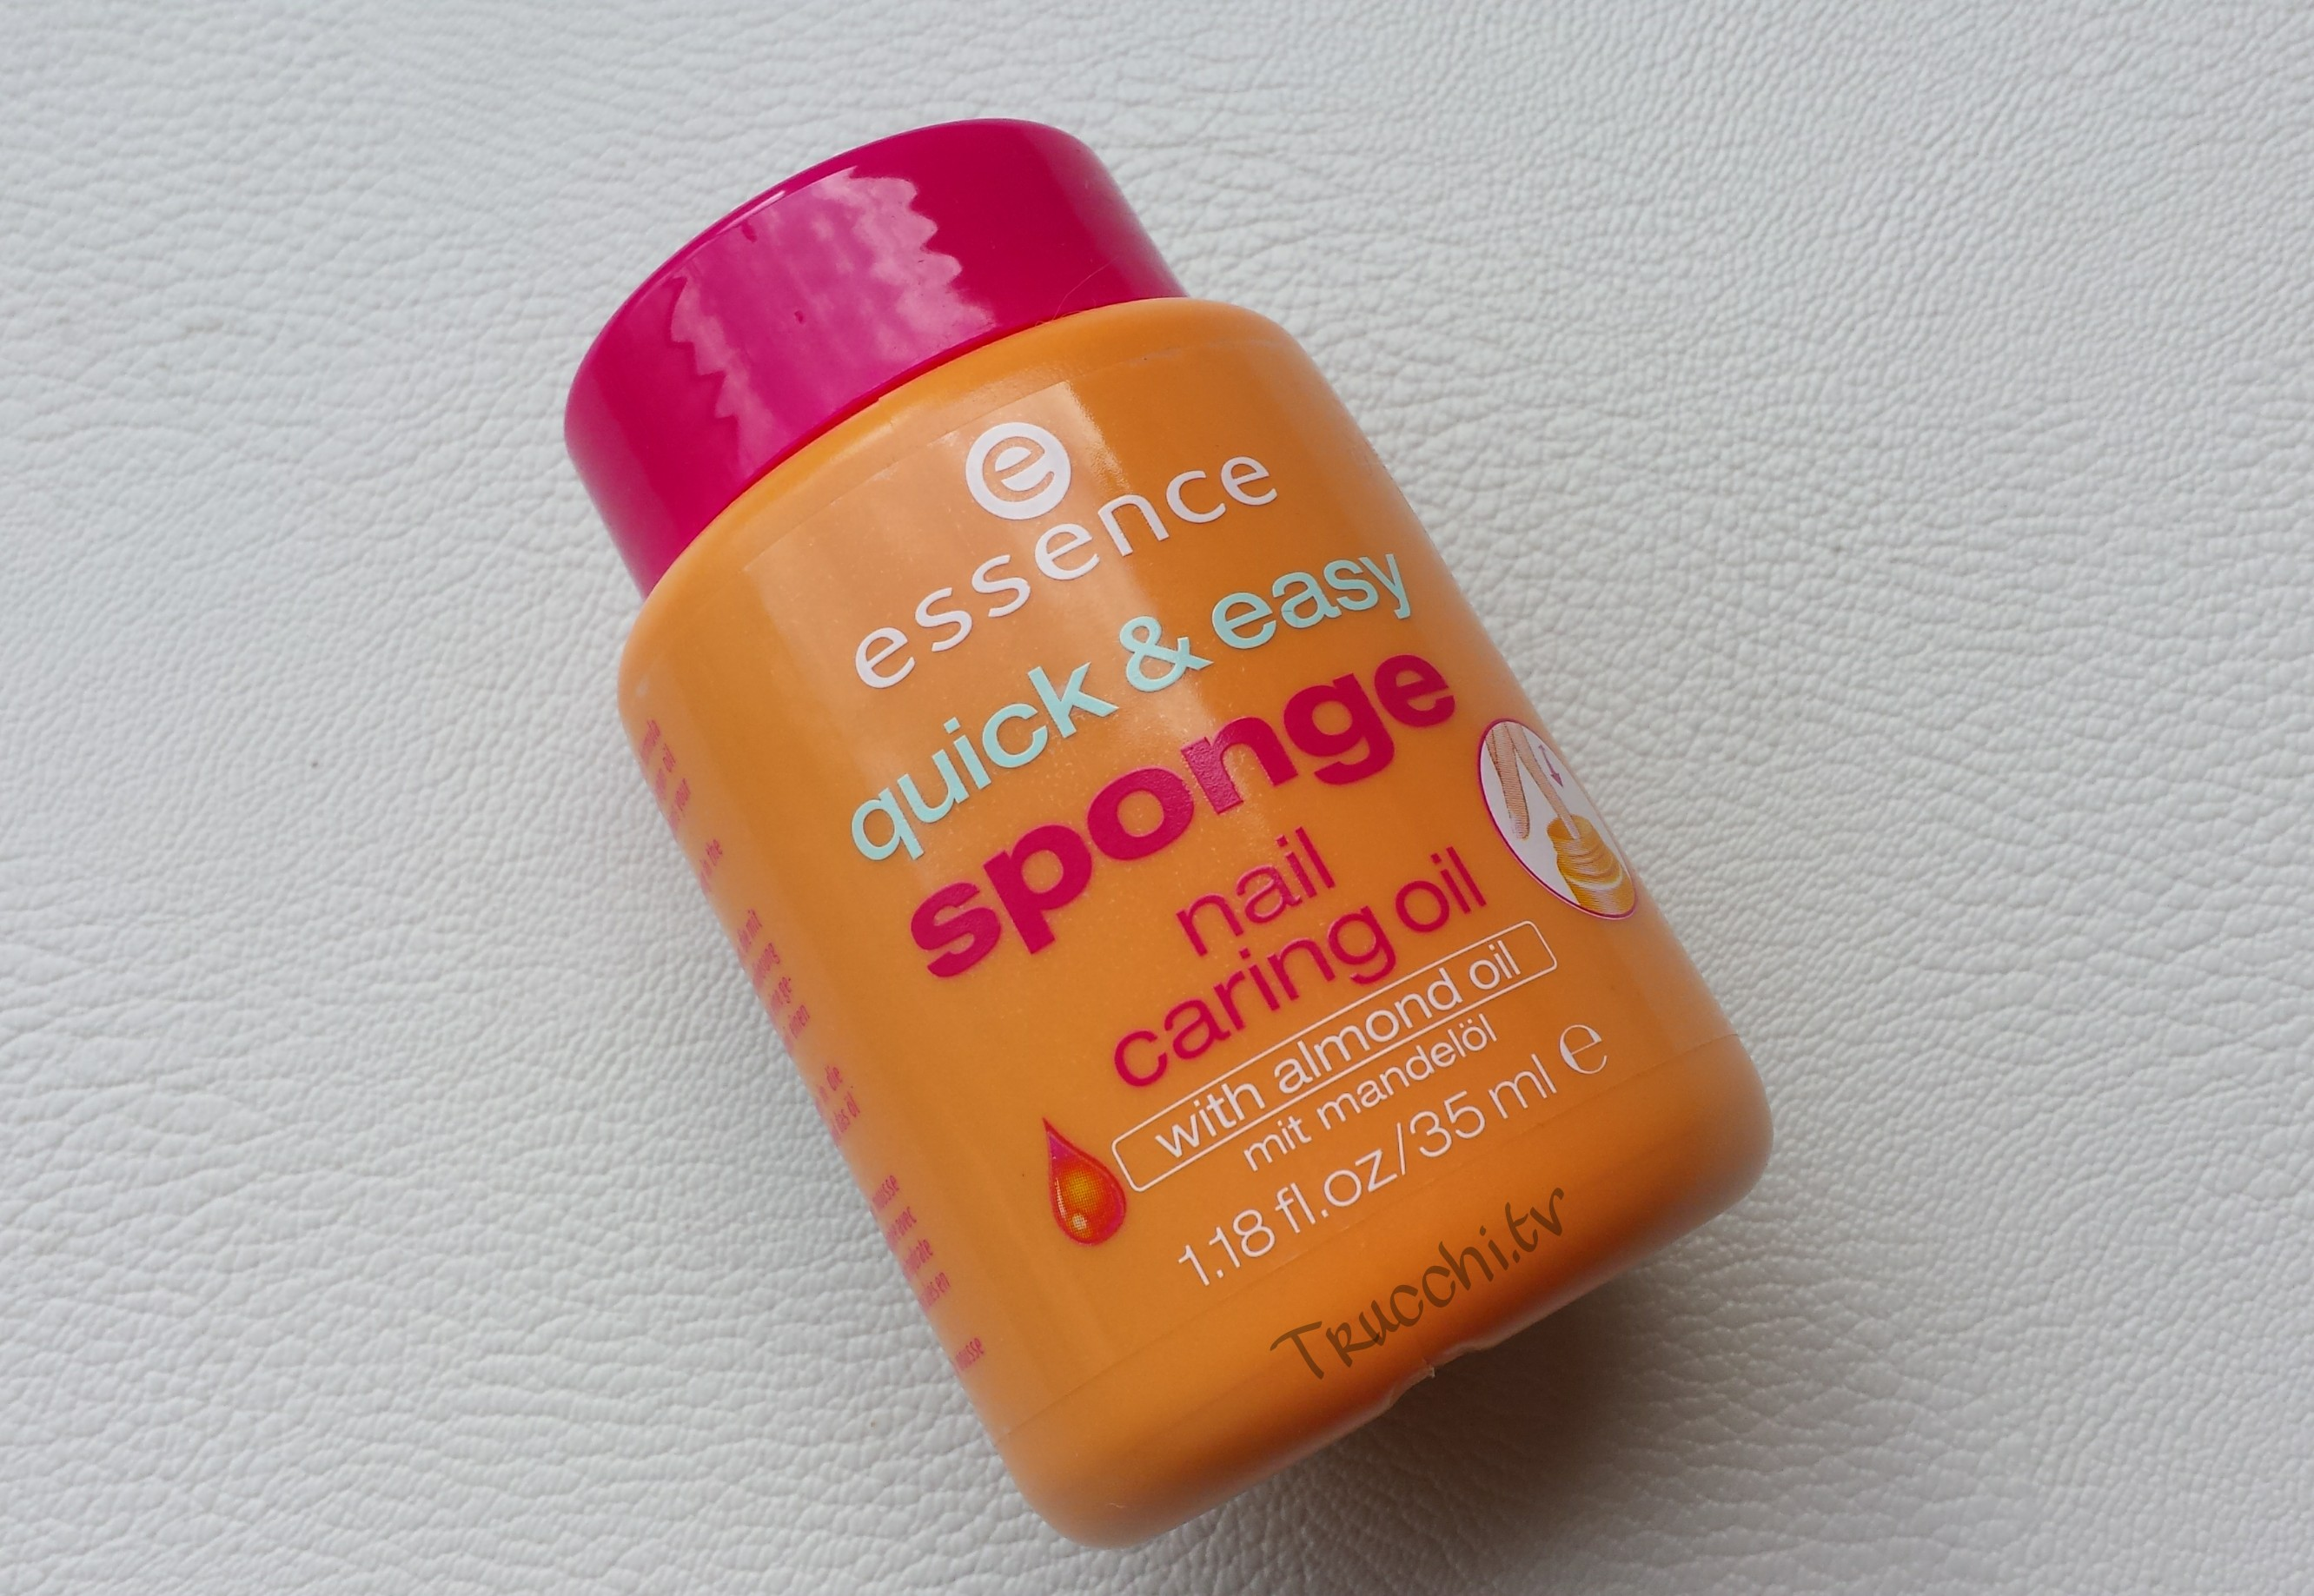 Essence Quick & Easy Sponge Nail Caring Oil -1